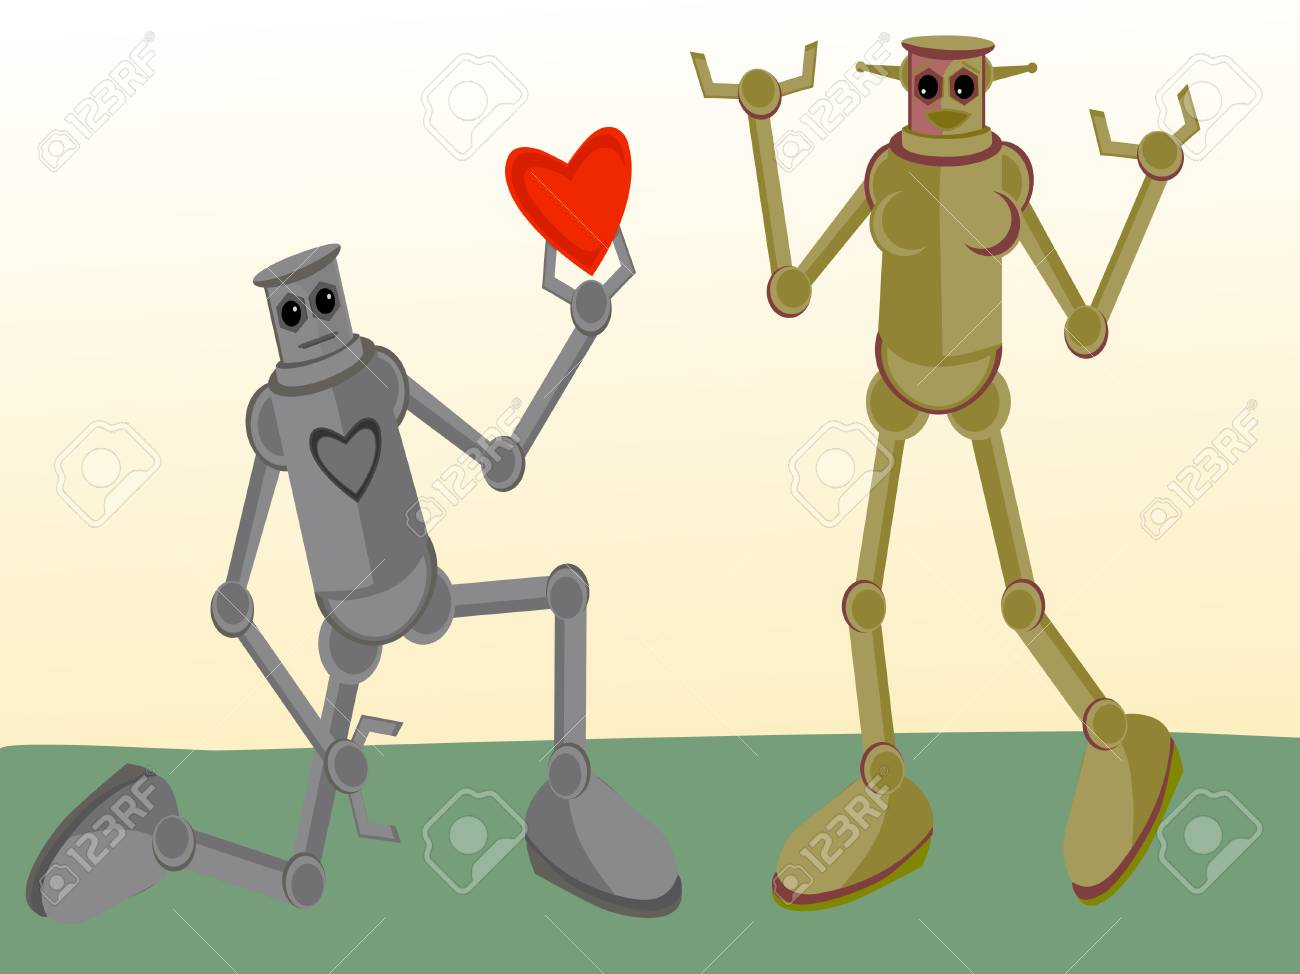 Male Robot giving his heart to Female Robot Stock Vector - 4098527